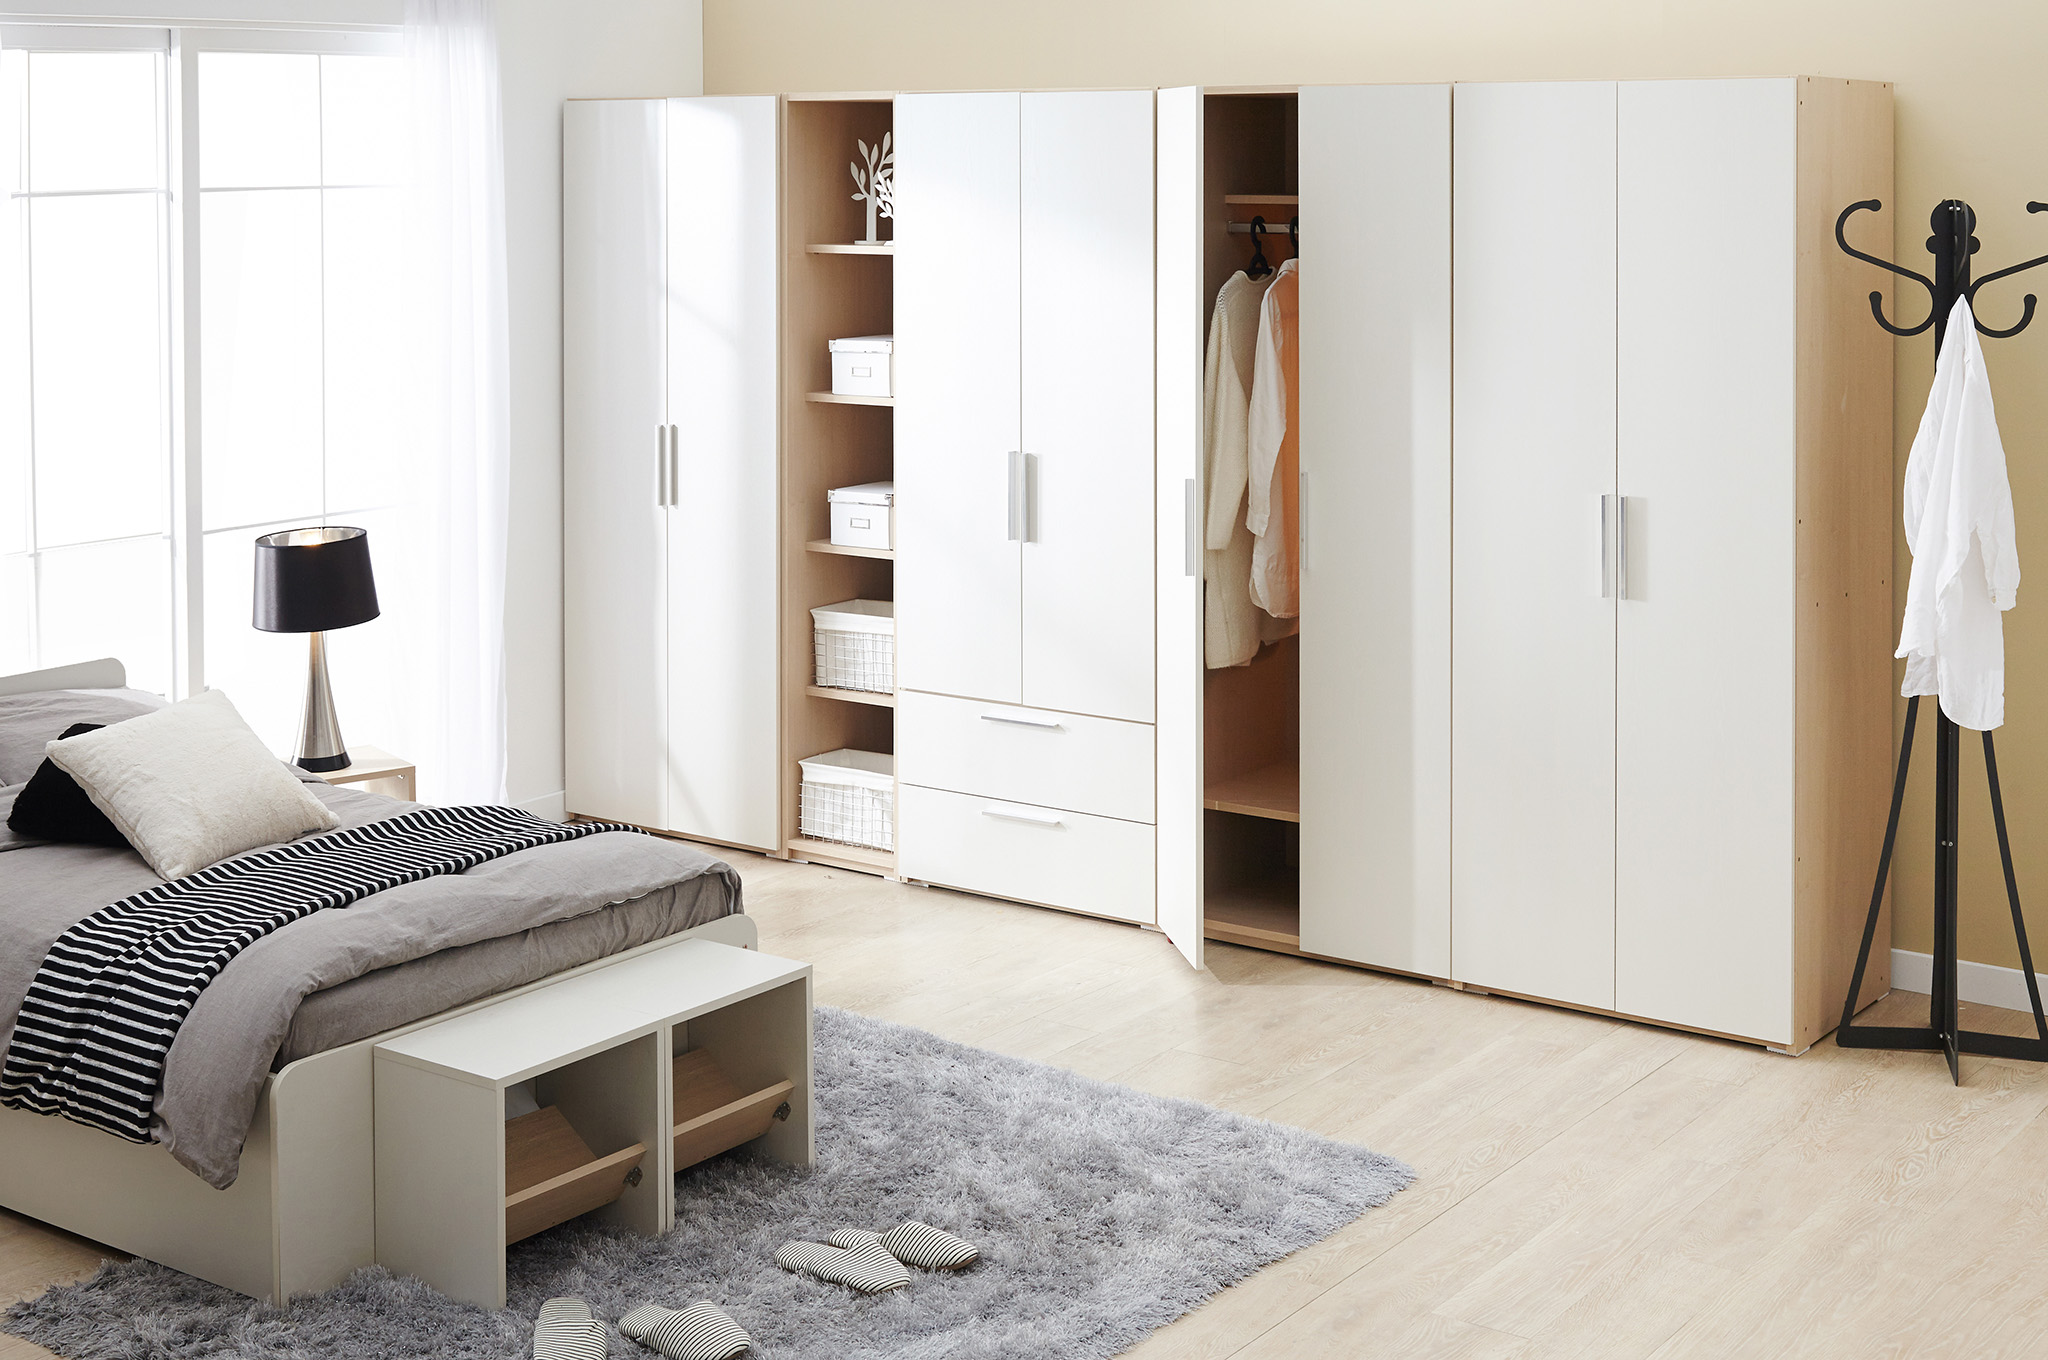 hinged wardrobe doors, wardrobe set, wardrobe with drawers